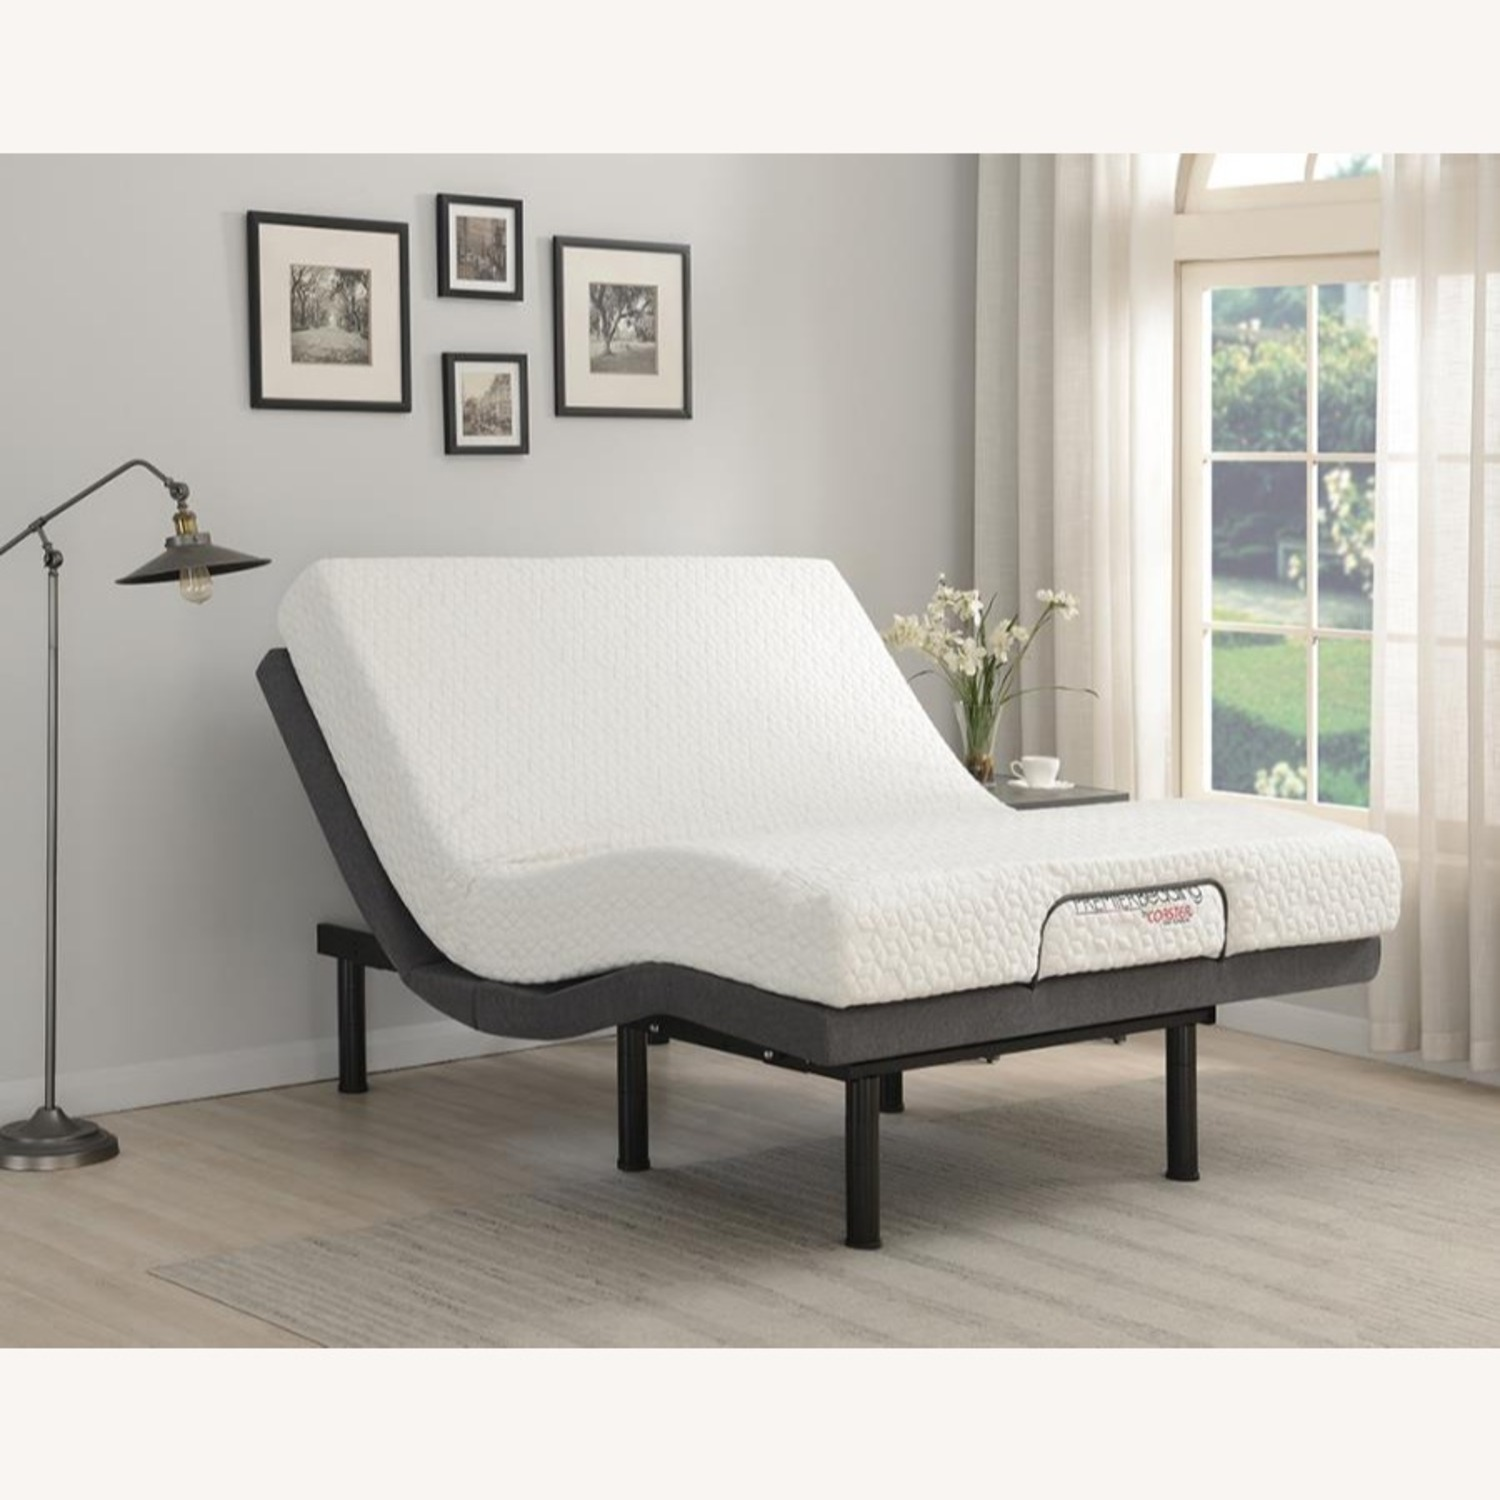 Twin XL Adjustable Bed Base In Grey Fabric Finish - image-14